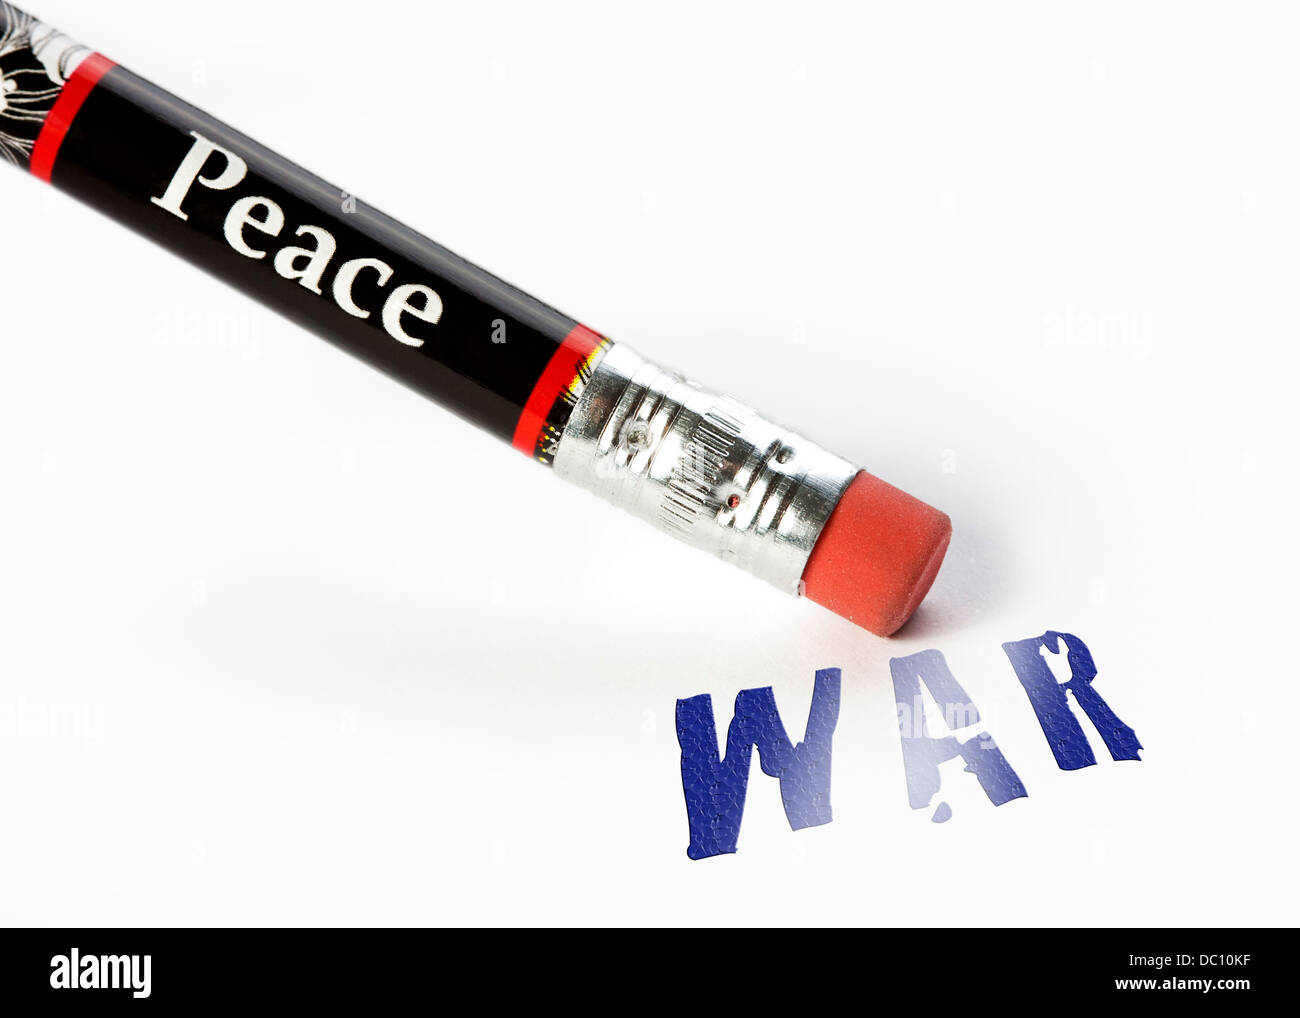 concept of peace erasing war using an eraser analogy - Stock Image